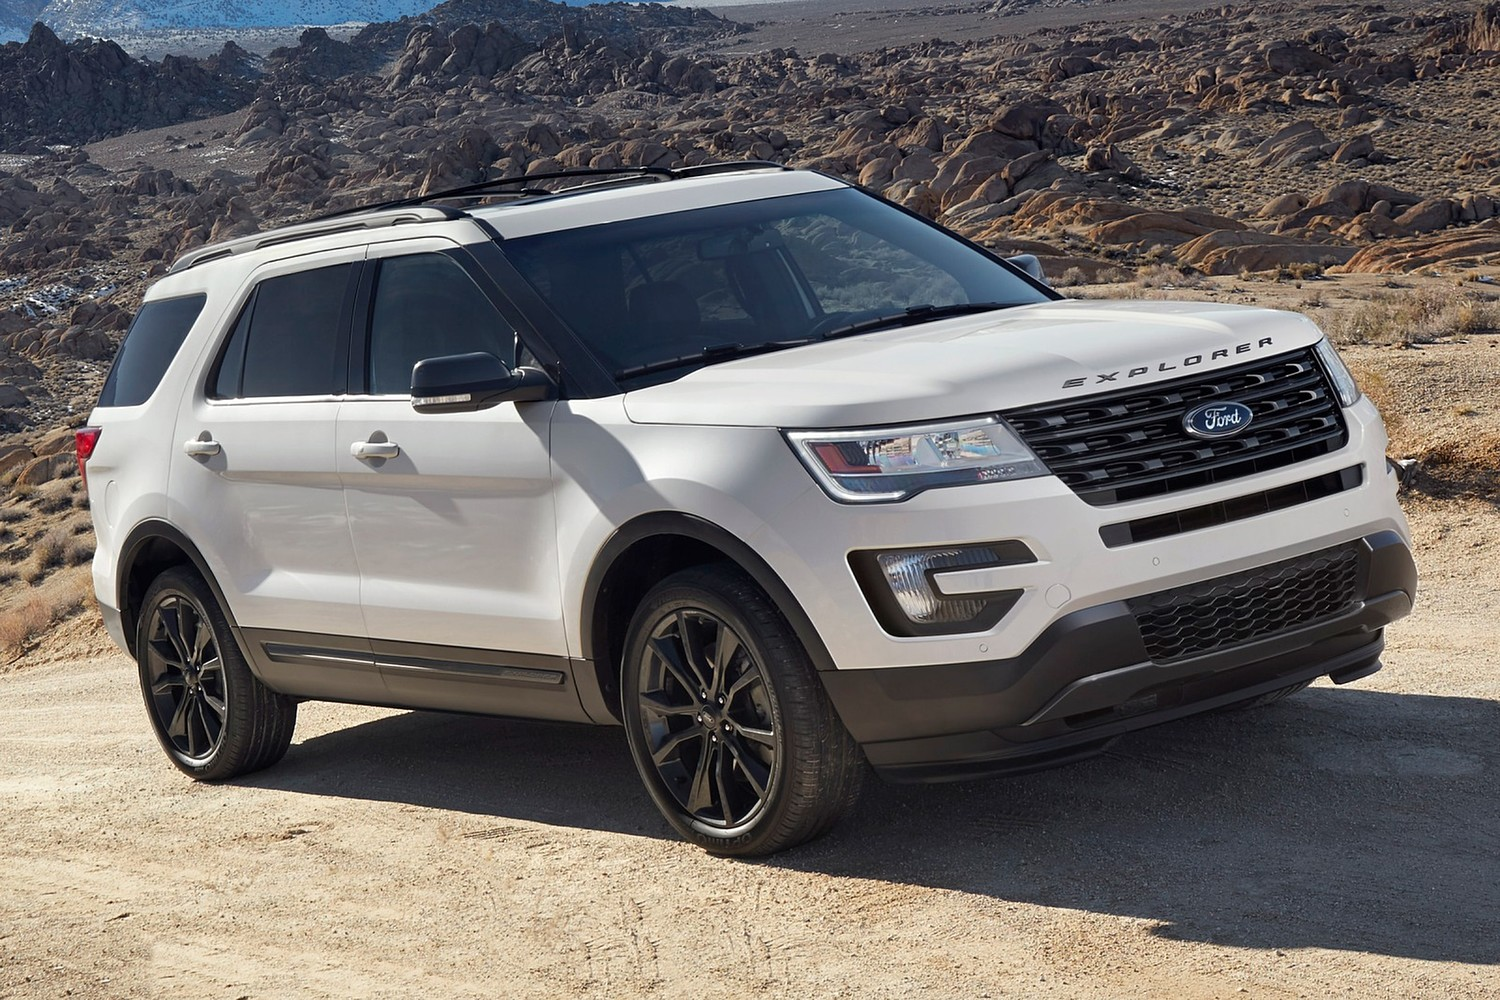 2017 Ford Explorer XLT 4dr SUV Exterior. Sport Appearance Package Shown.